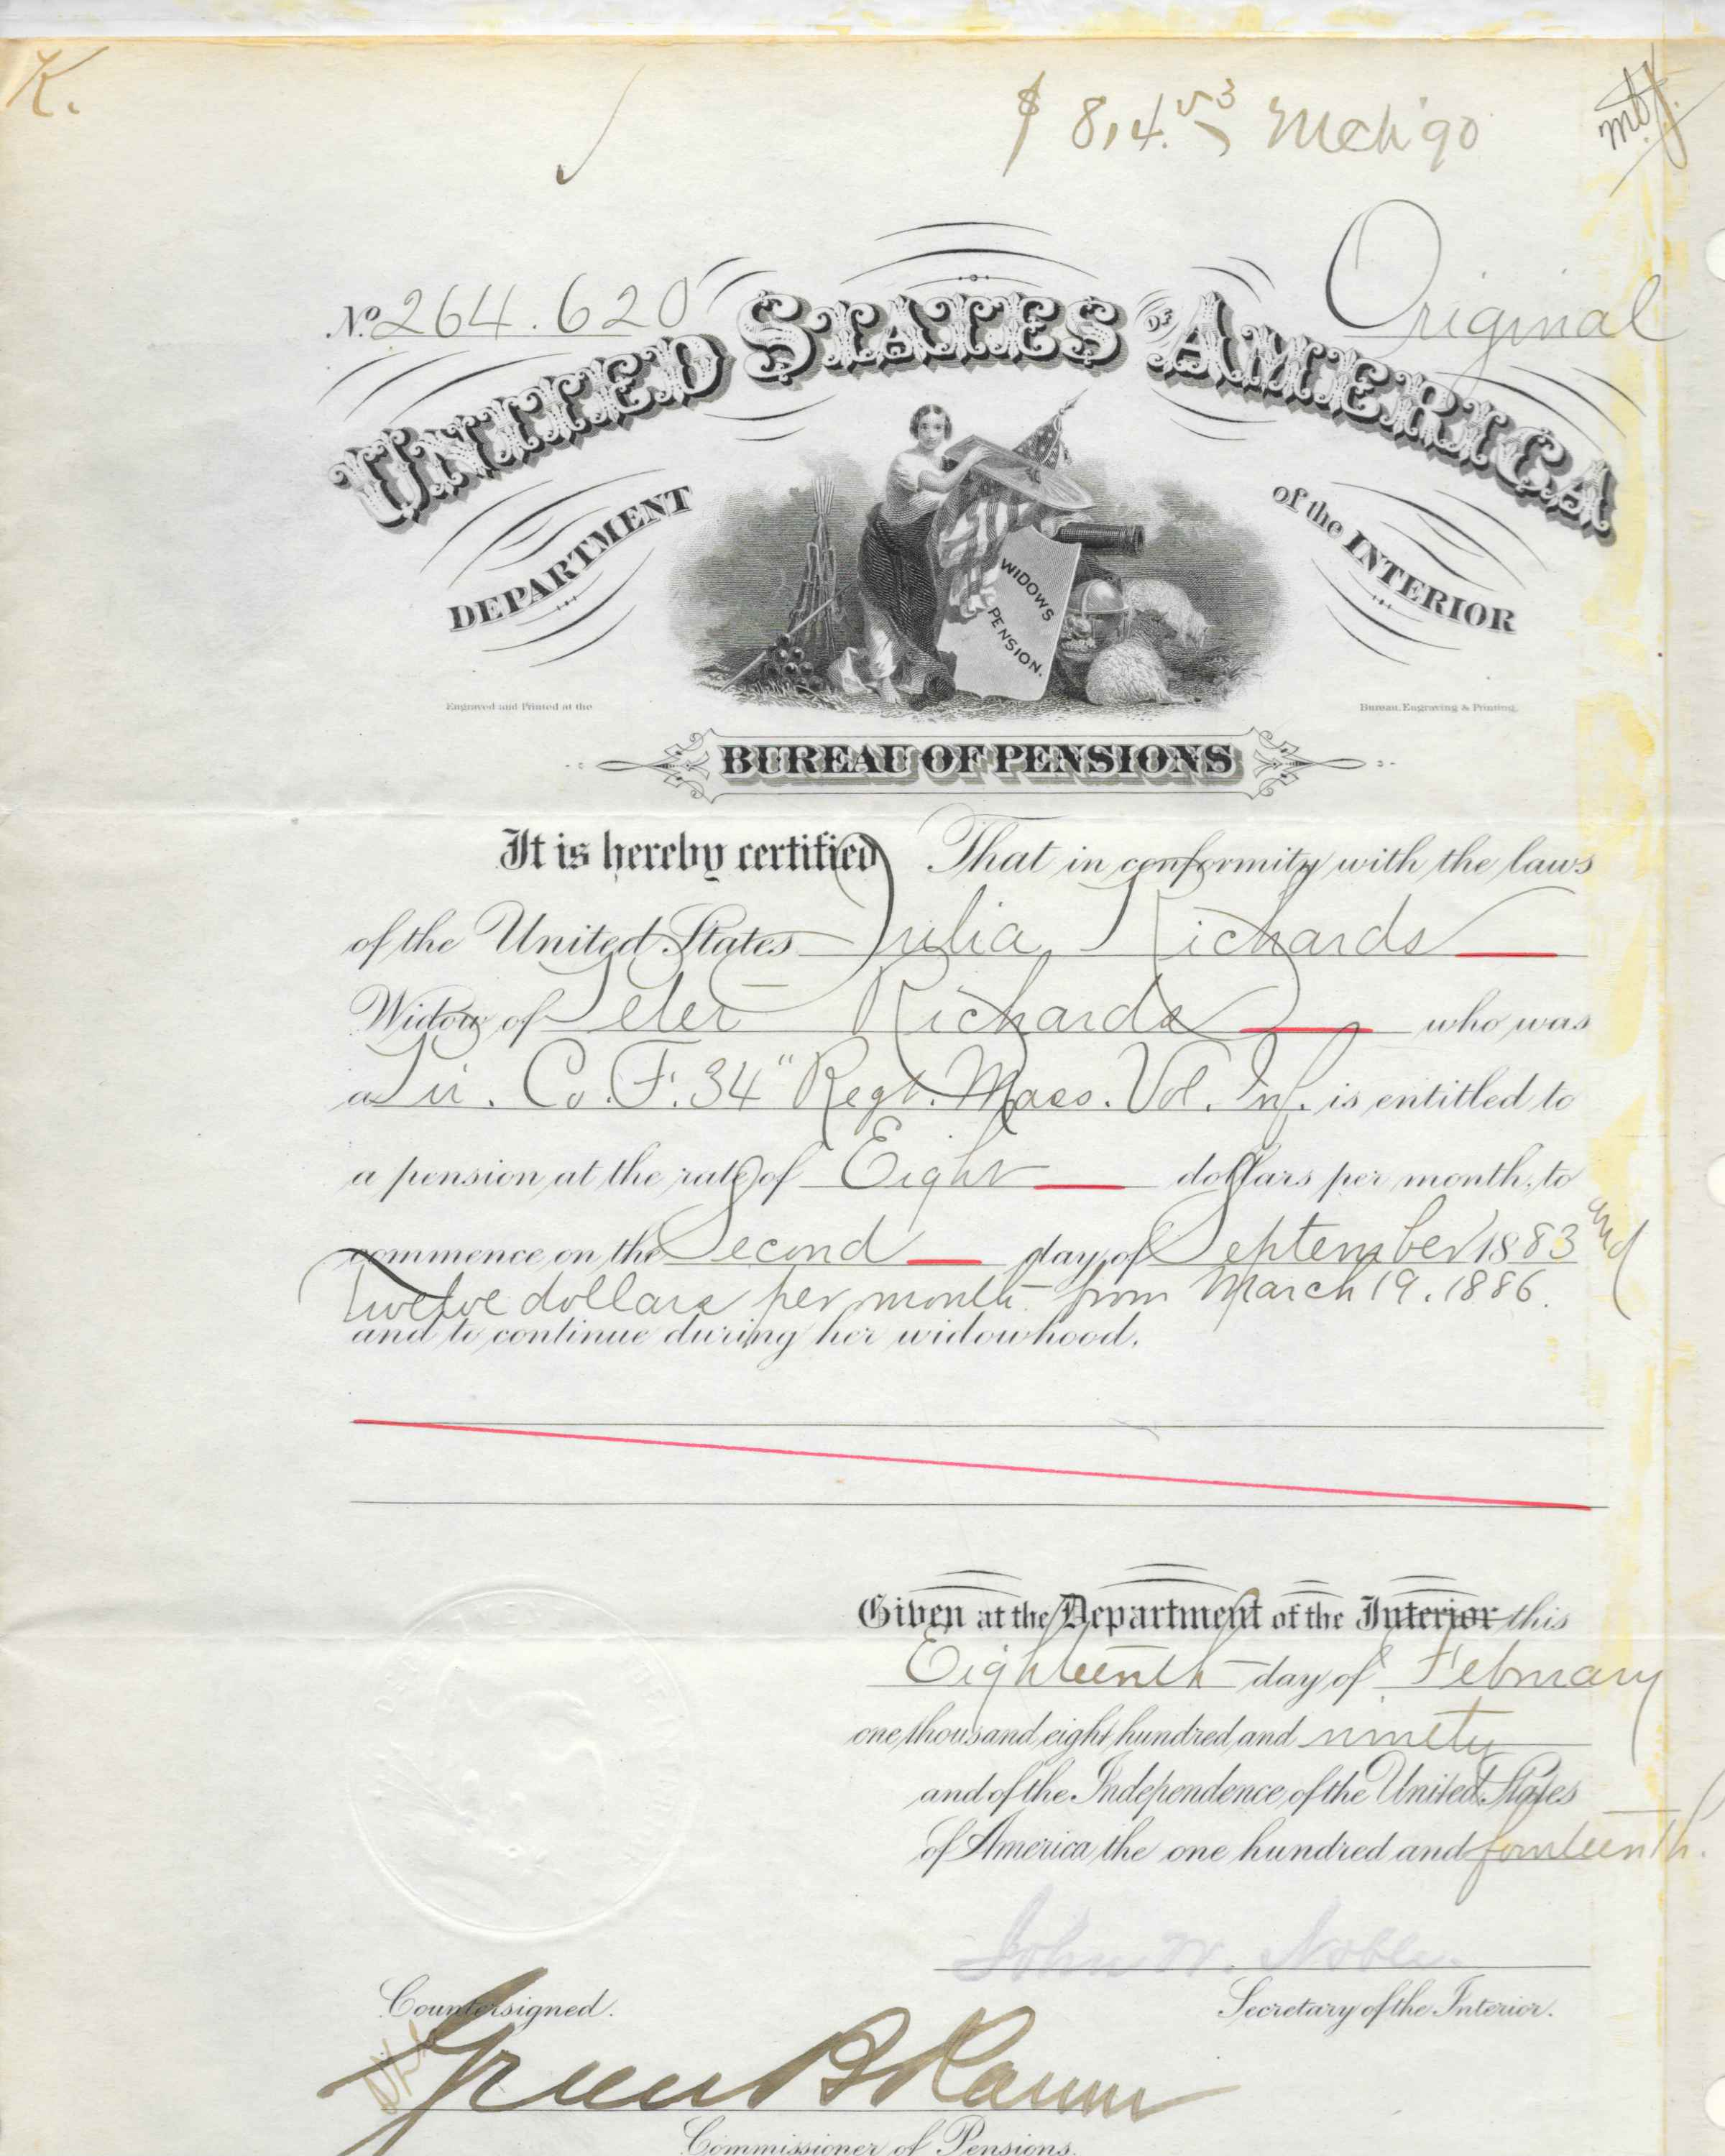 The certification of Julia Richards' pension.